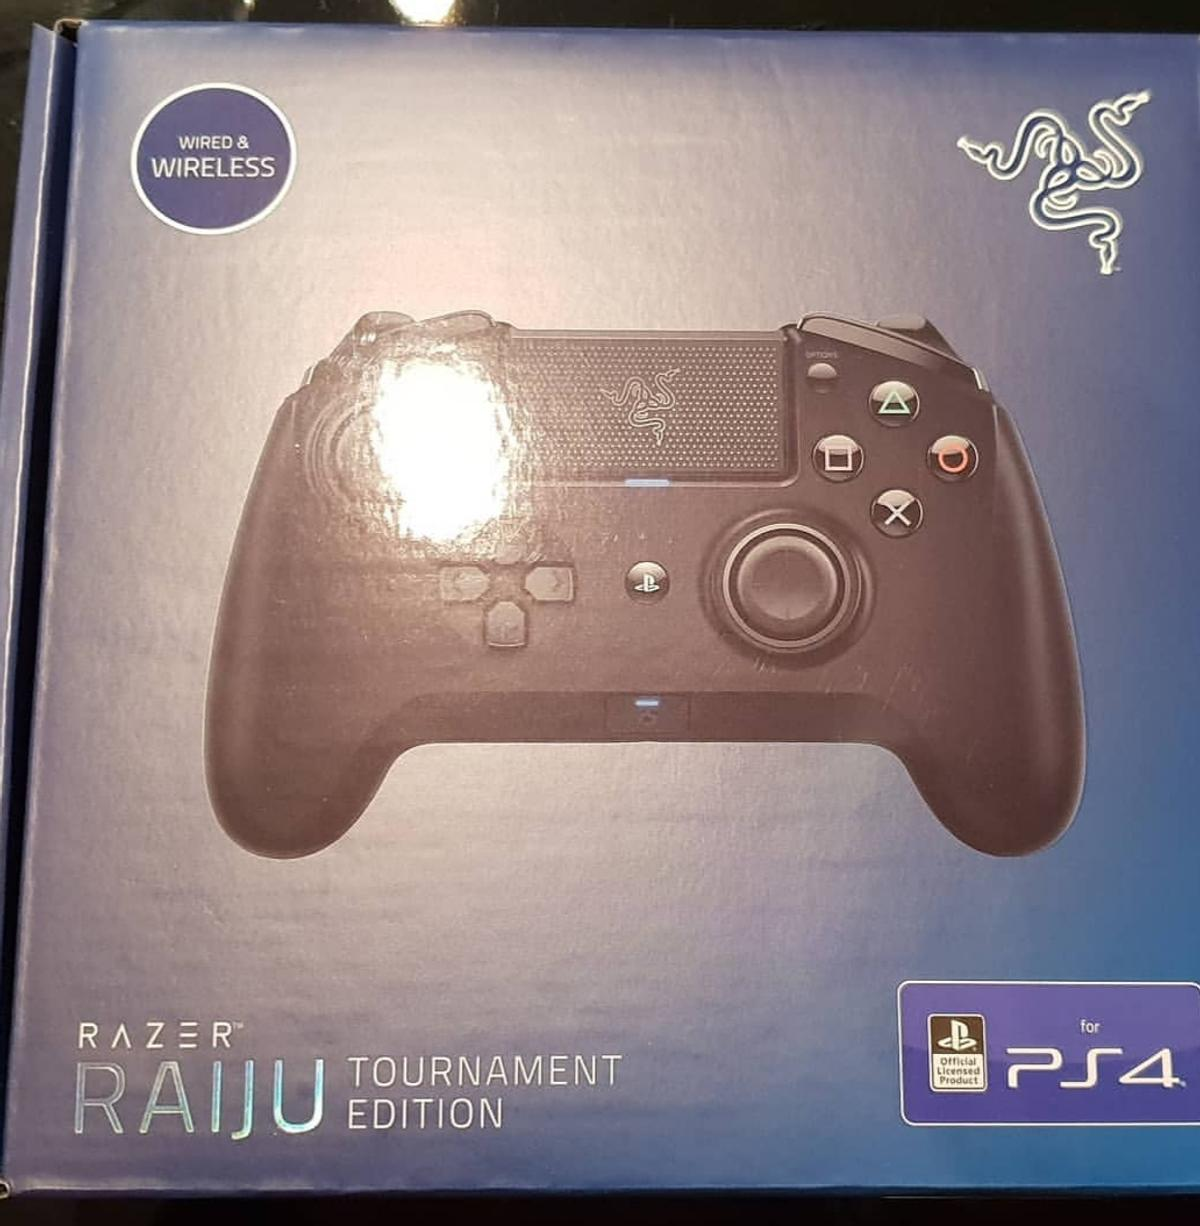 Razer Raiju Tournament Edition Ps4 In Wf1 Wakefield For 90 00 For Sale Shpock The razer raiju tournament edition offers a competitive edge and premium feel… at a premium price. razer raiju tournament edition ps4